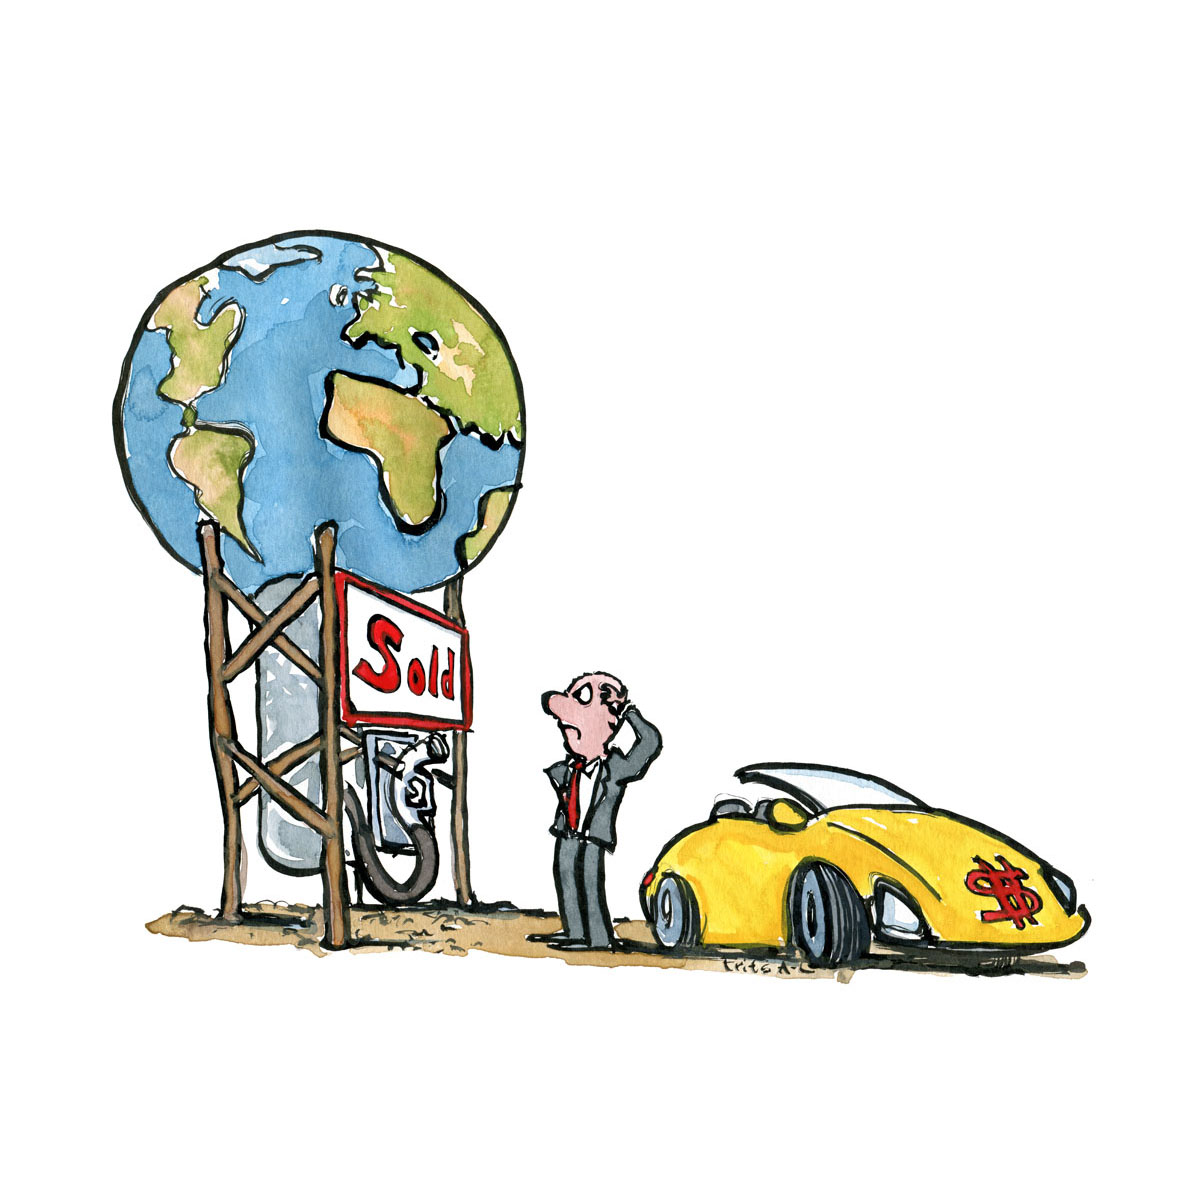 Drawing of gasoline pump with Planet Earth as fuel, and angry businessman with fast car looking frustrated. Resources and Environment. Handmade color illustration by Frits Ahlefeldt